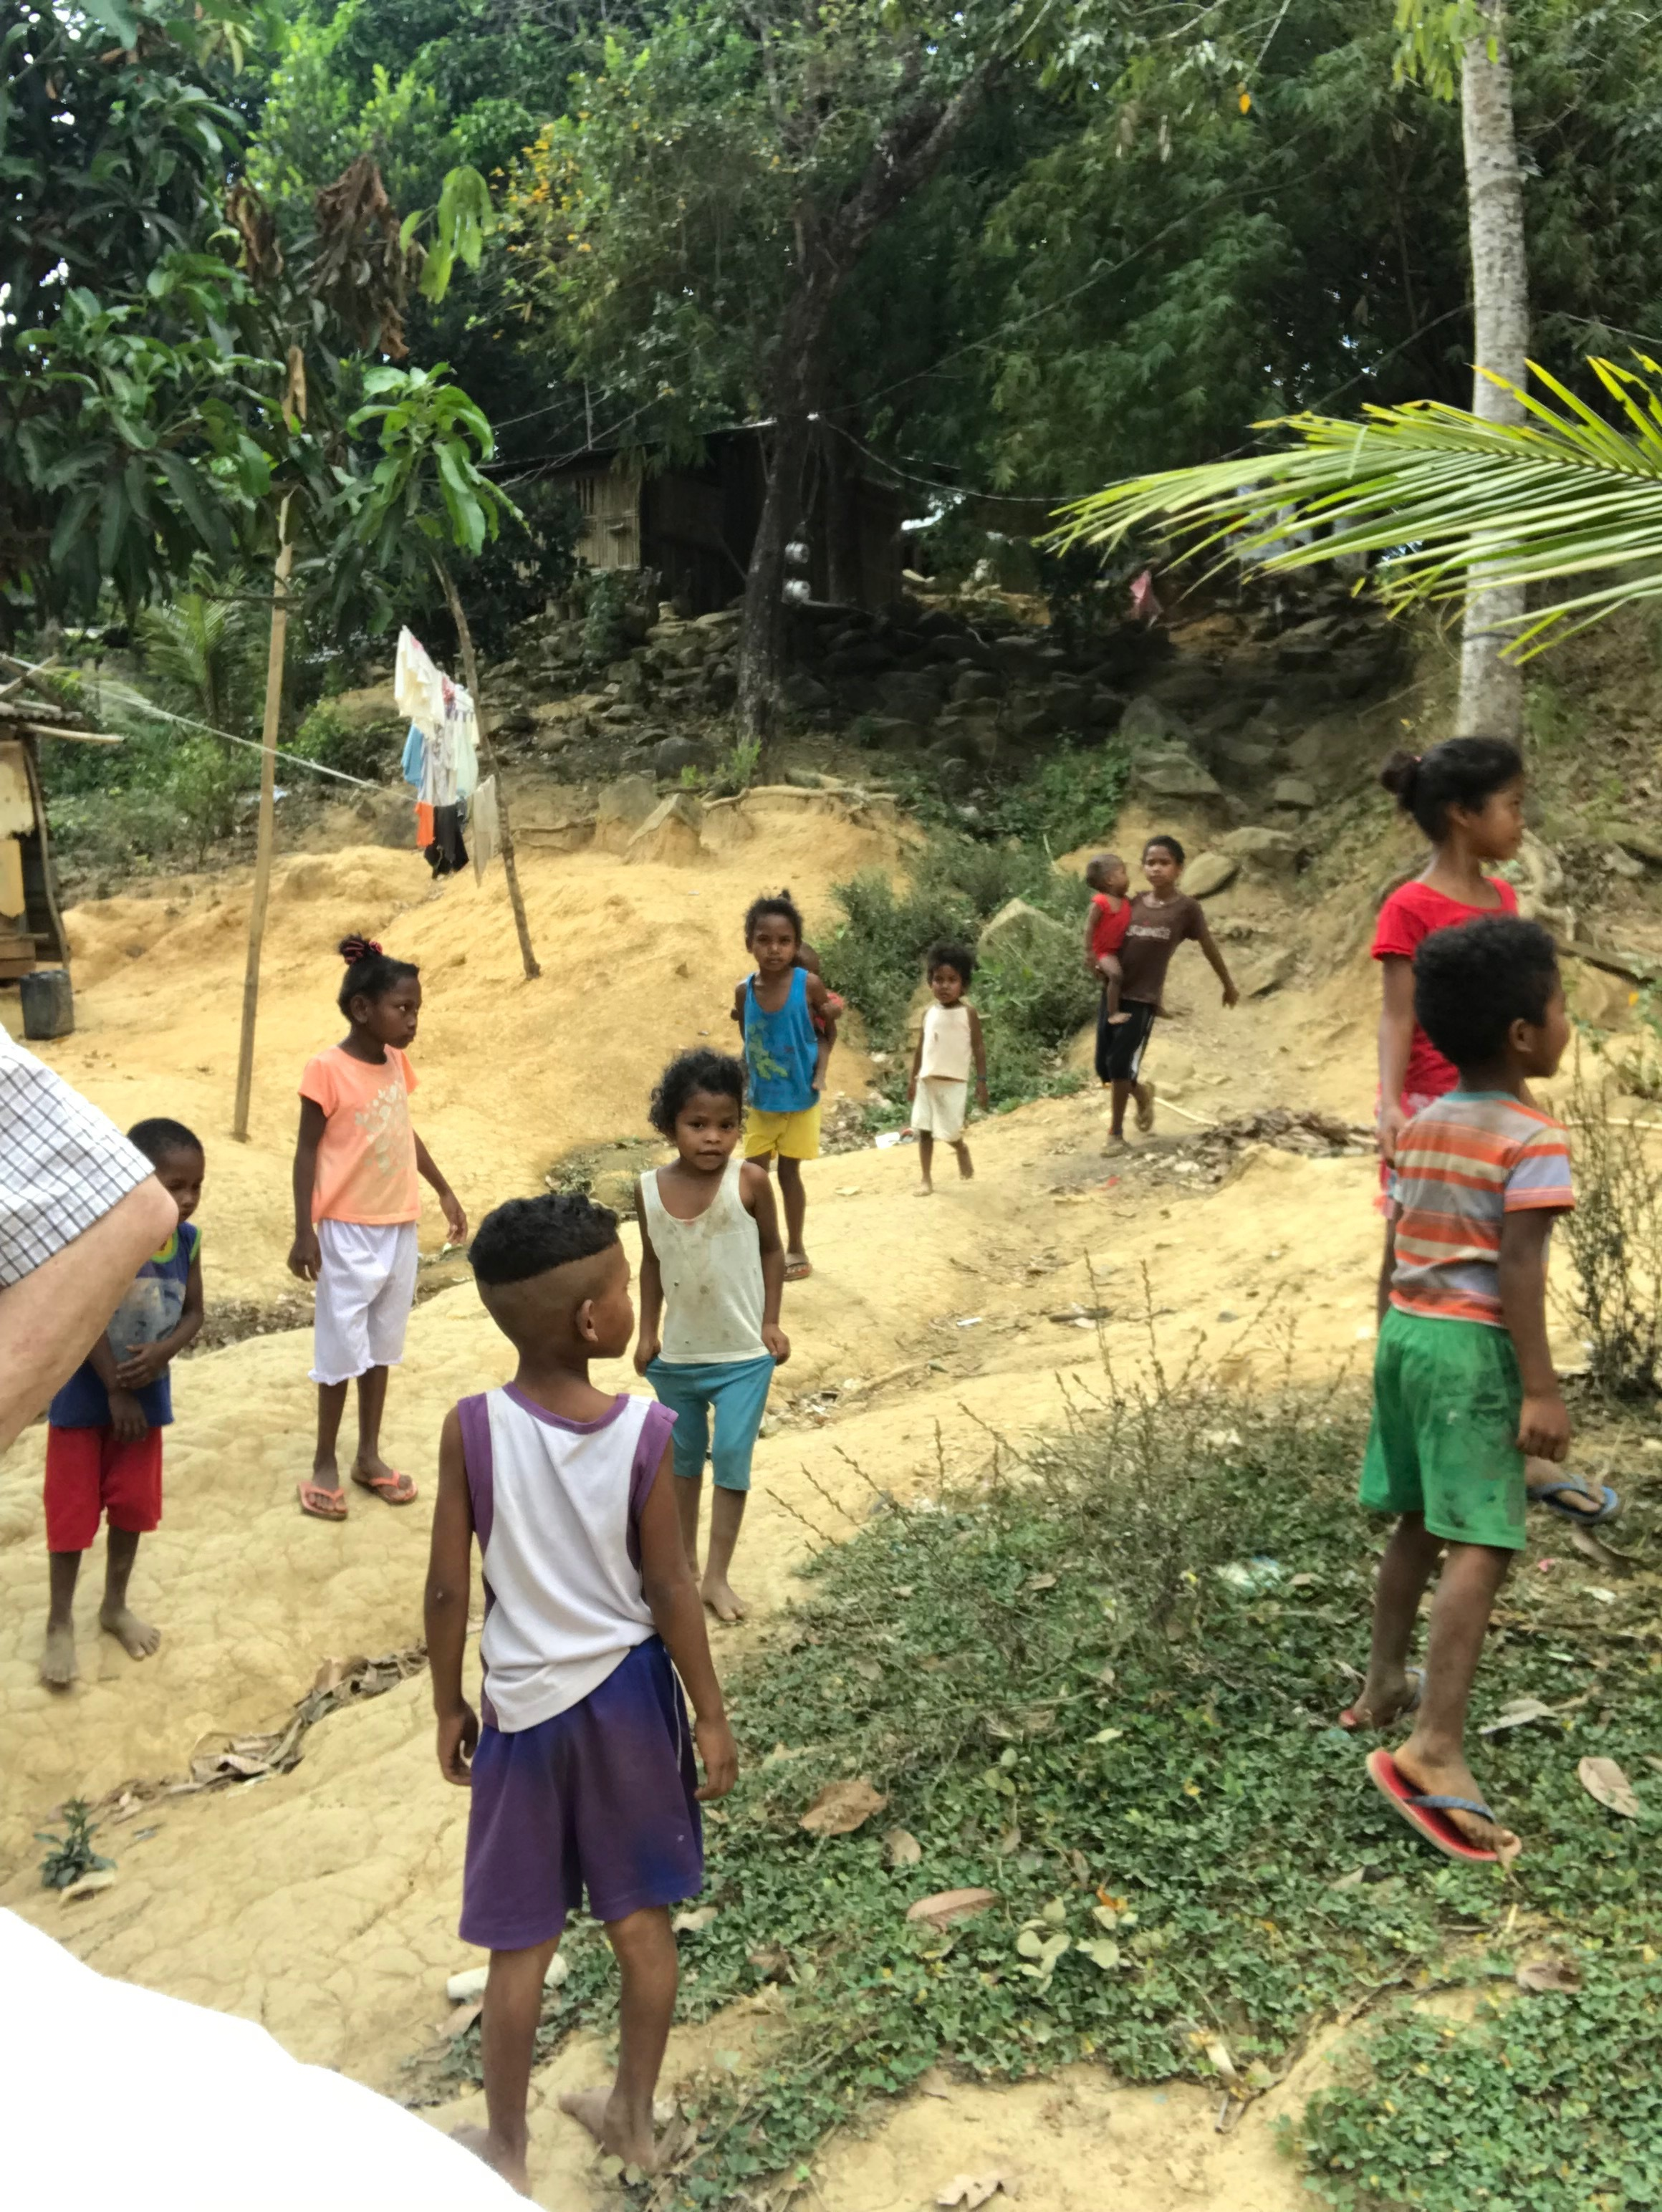 Some of the kids following us around while visiting the village.